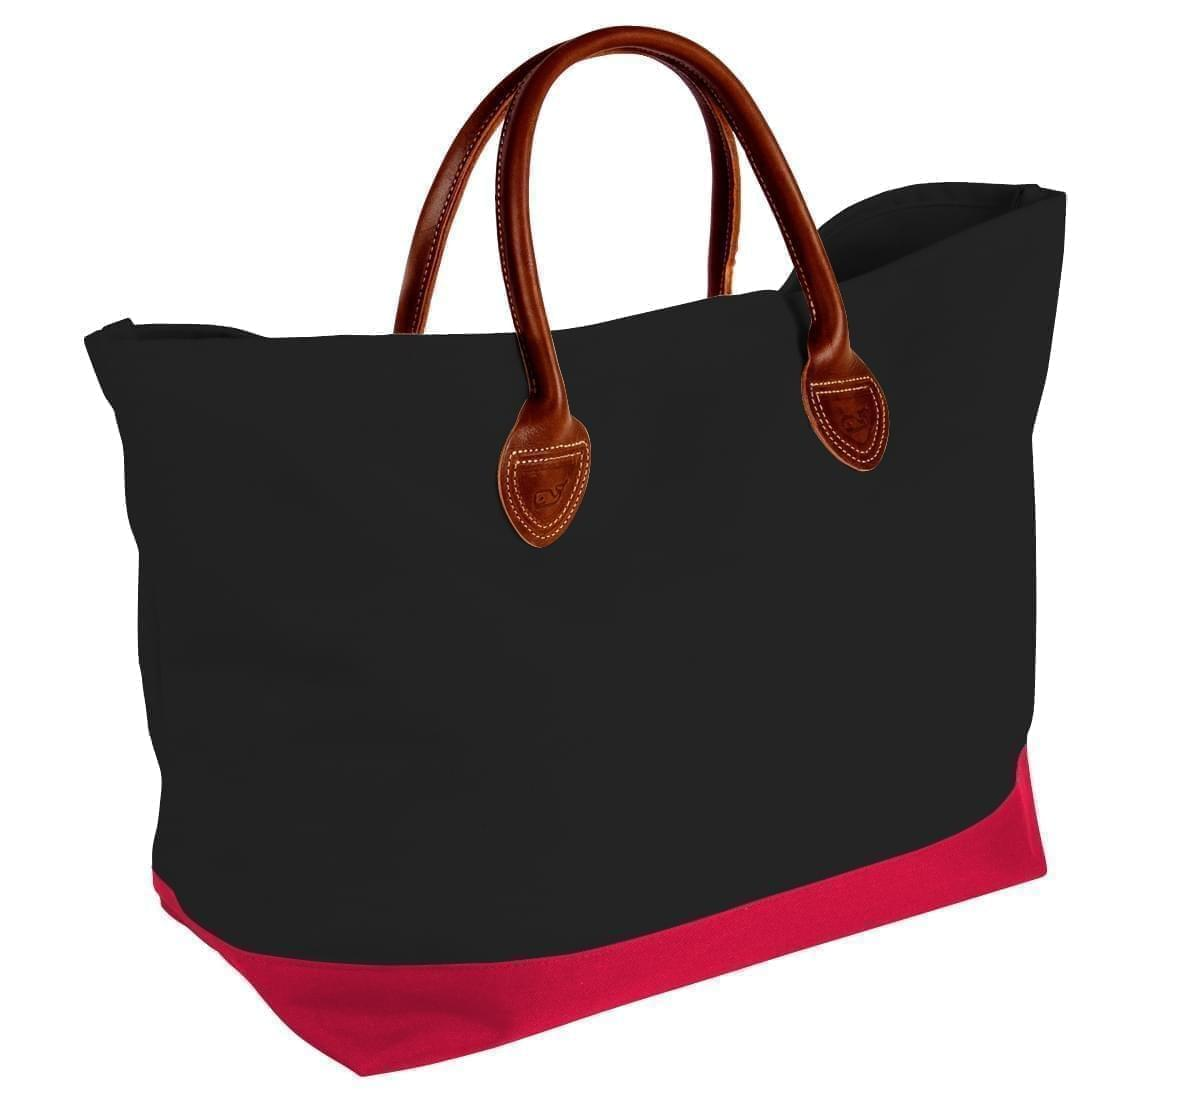 USA Made Canvas Leather Handle Totes, Black-Red, 10899-LH9